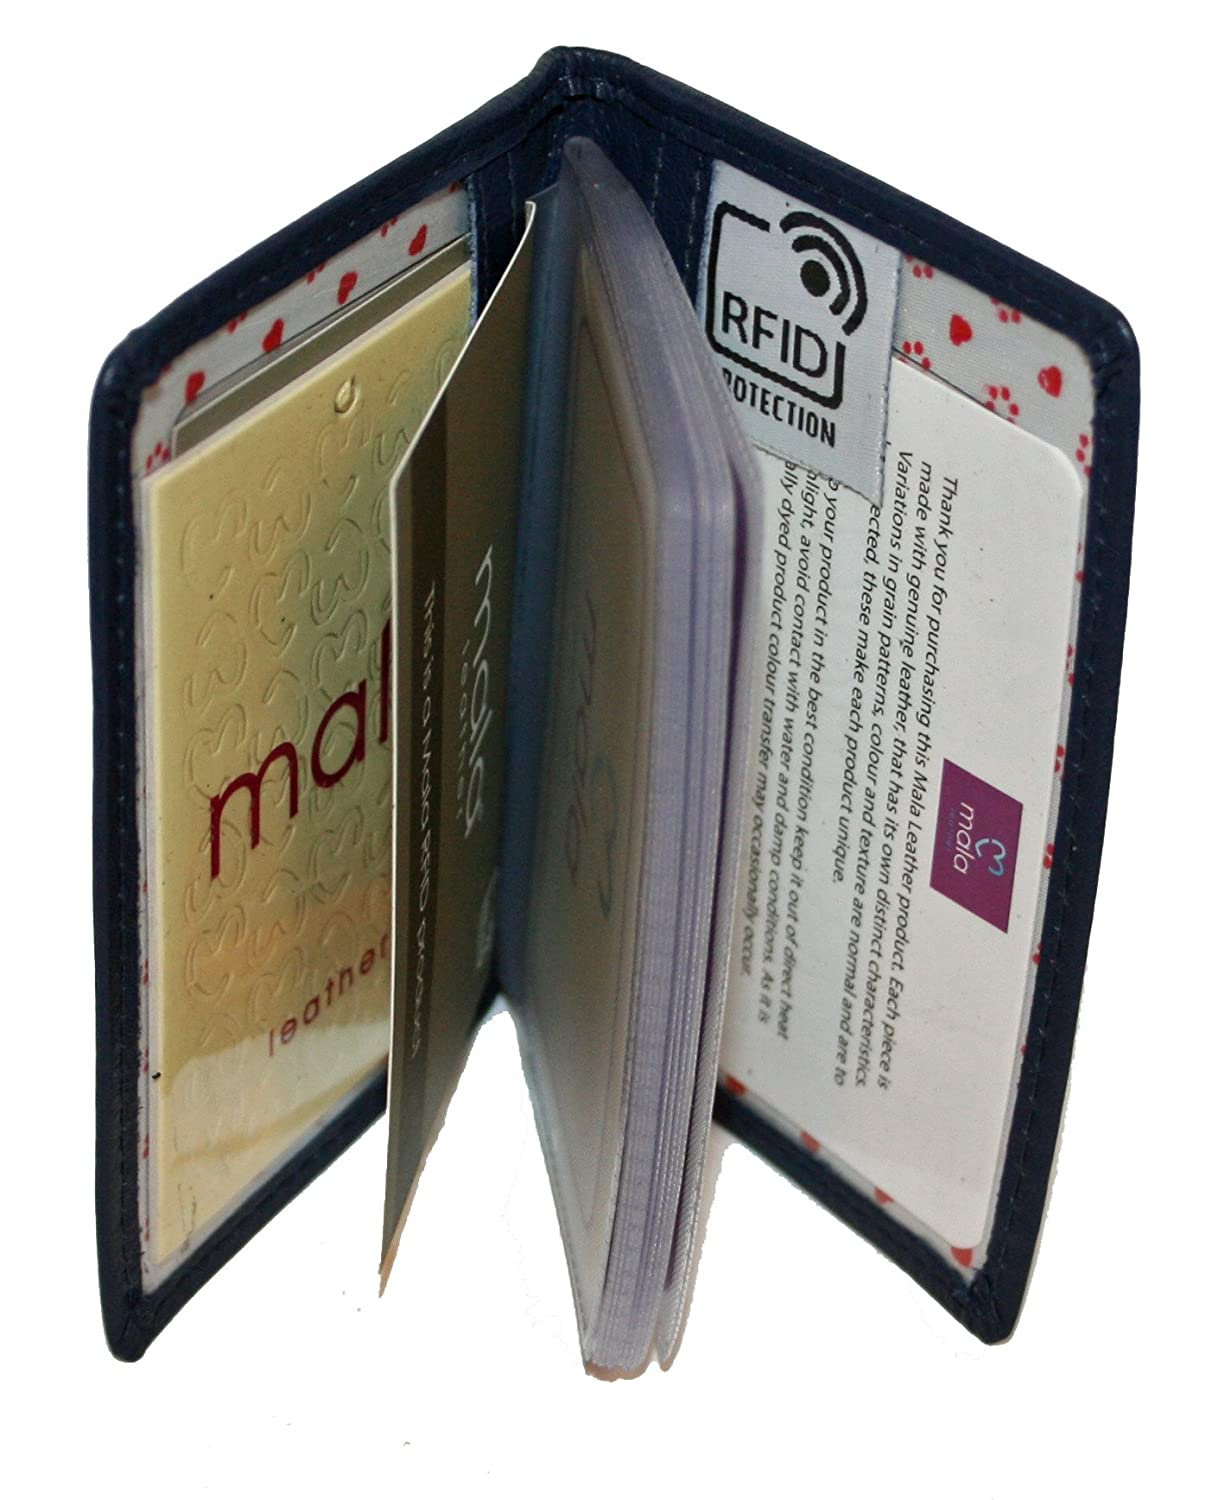 Mala Leather Small Bank//Card Holder Style Lucy 61230 Colour Navy RFID Protection